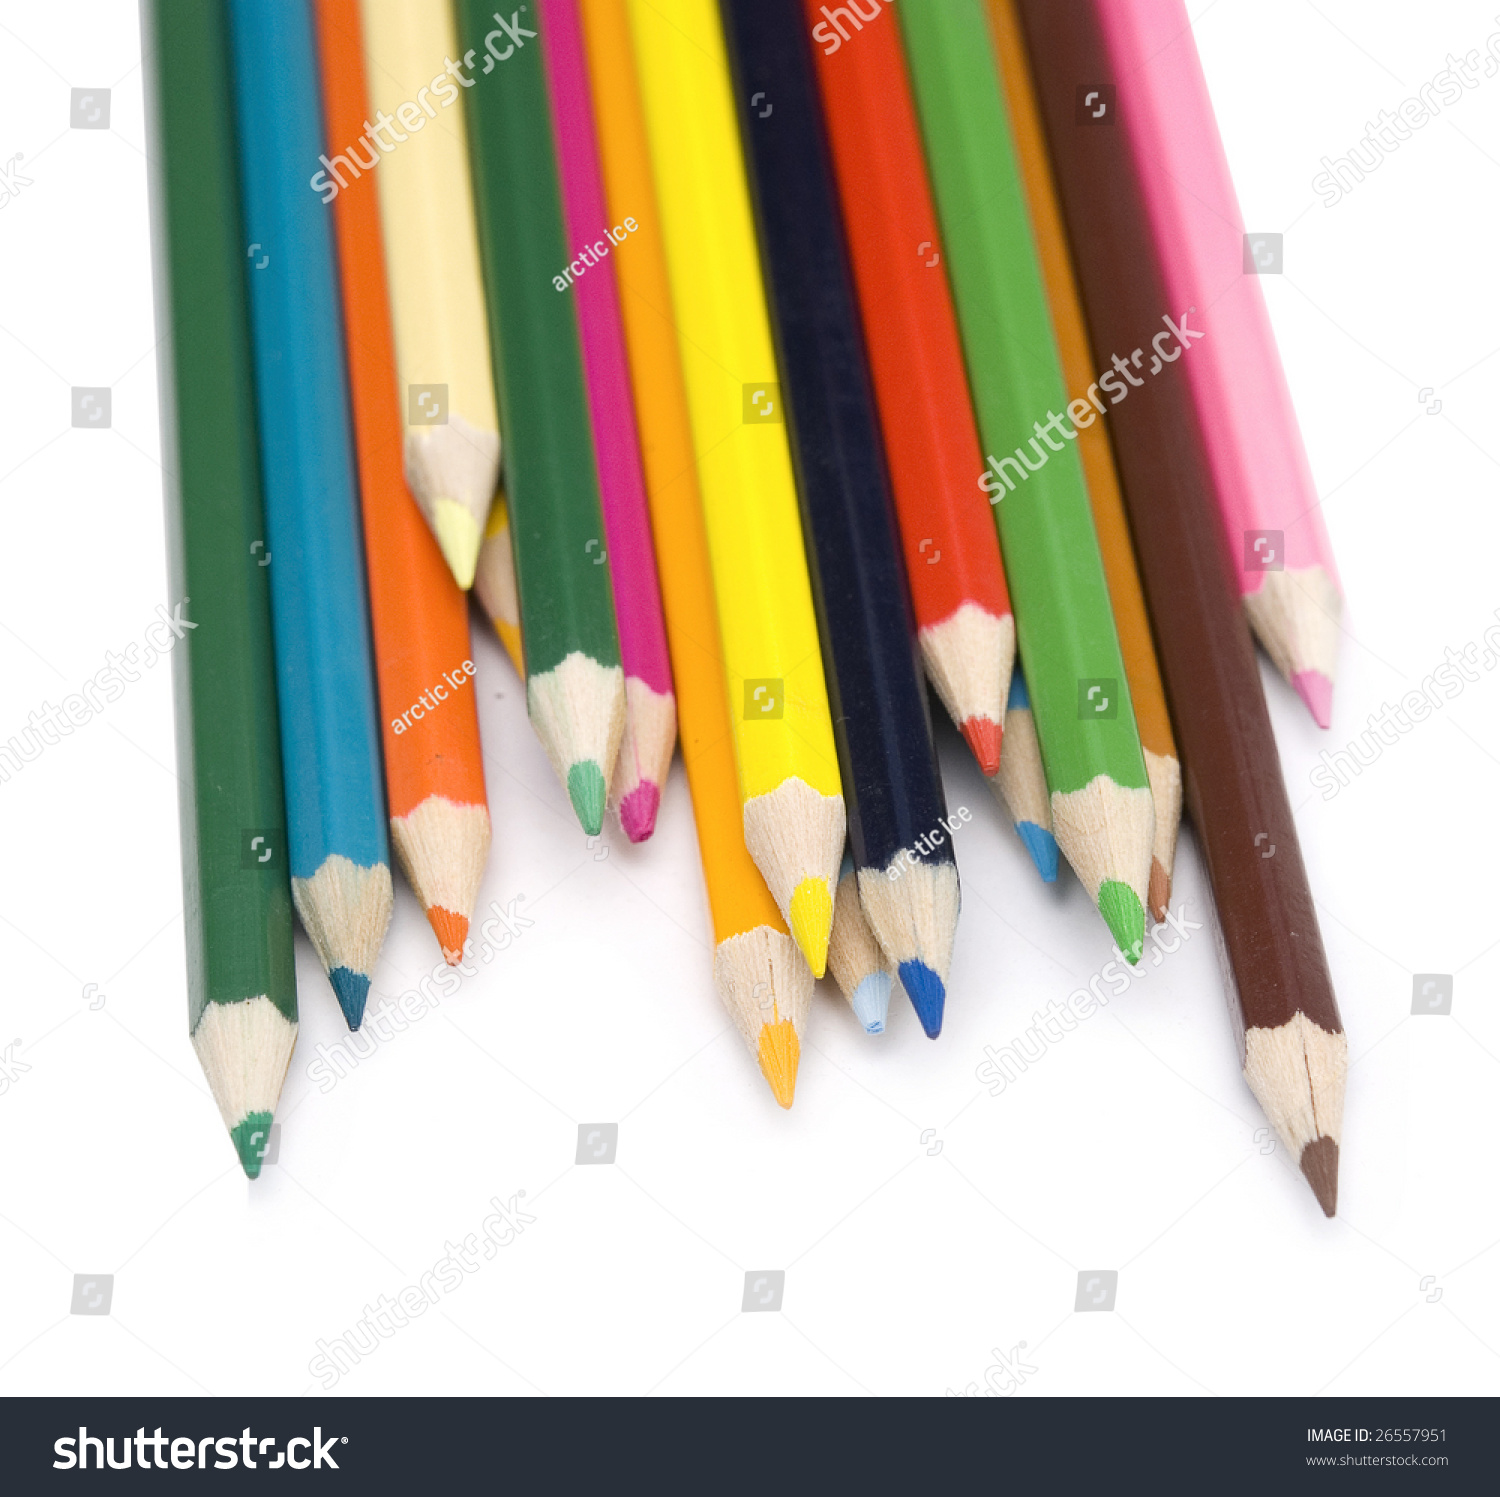 Colored Pencils On White Background Stock Photo 26557951 - Shutterstock